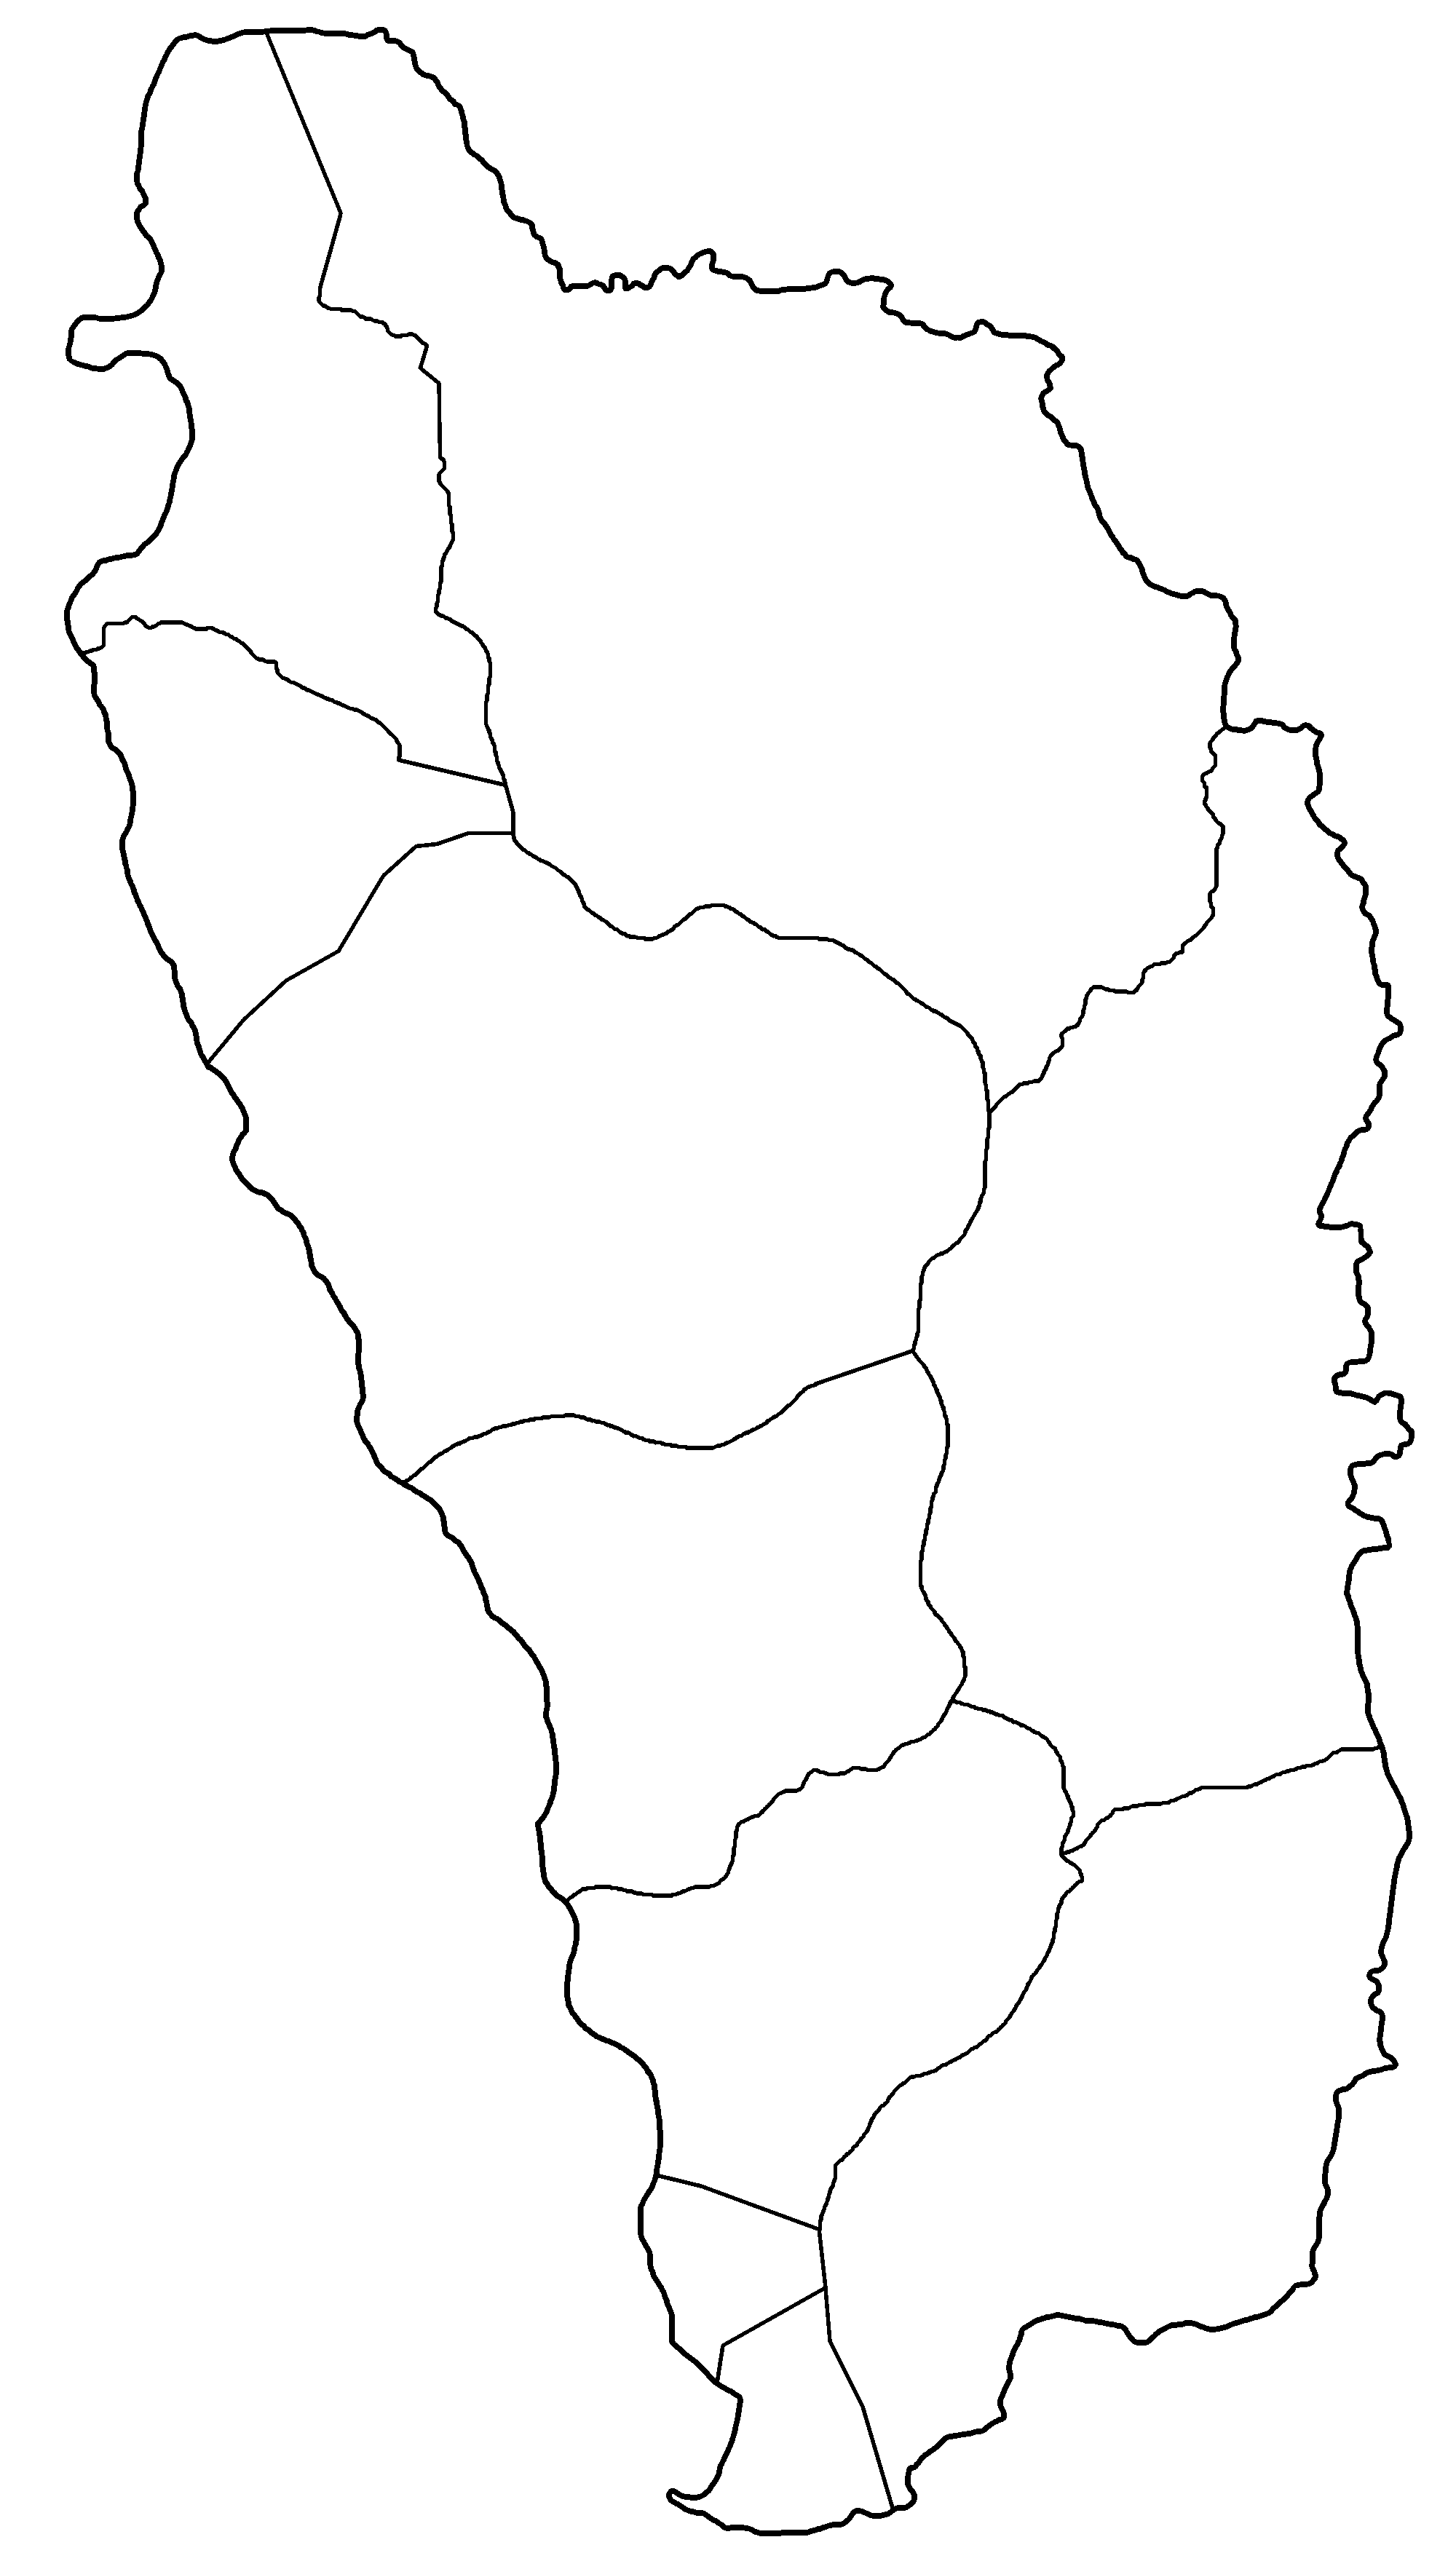 Map of dominica clipart.